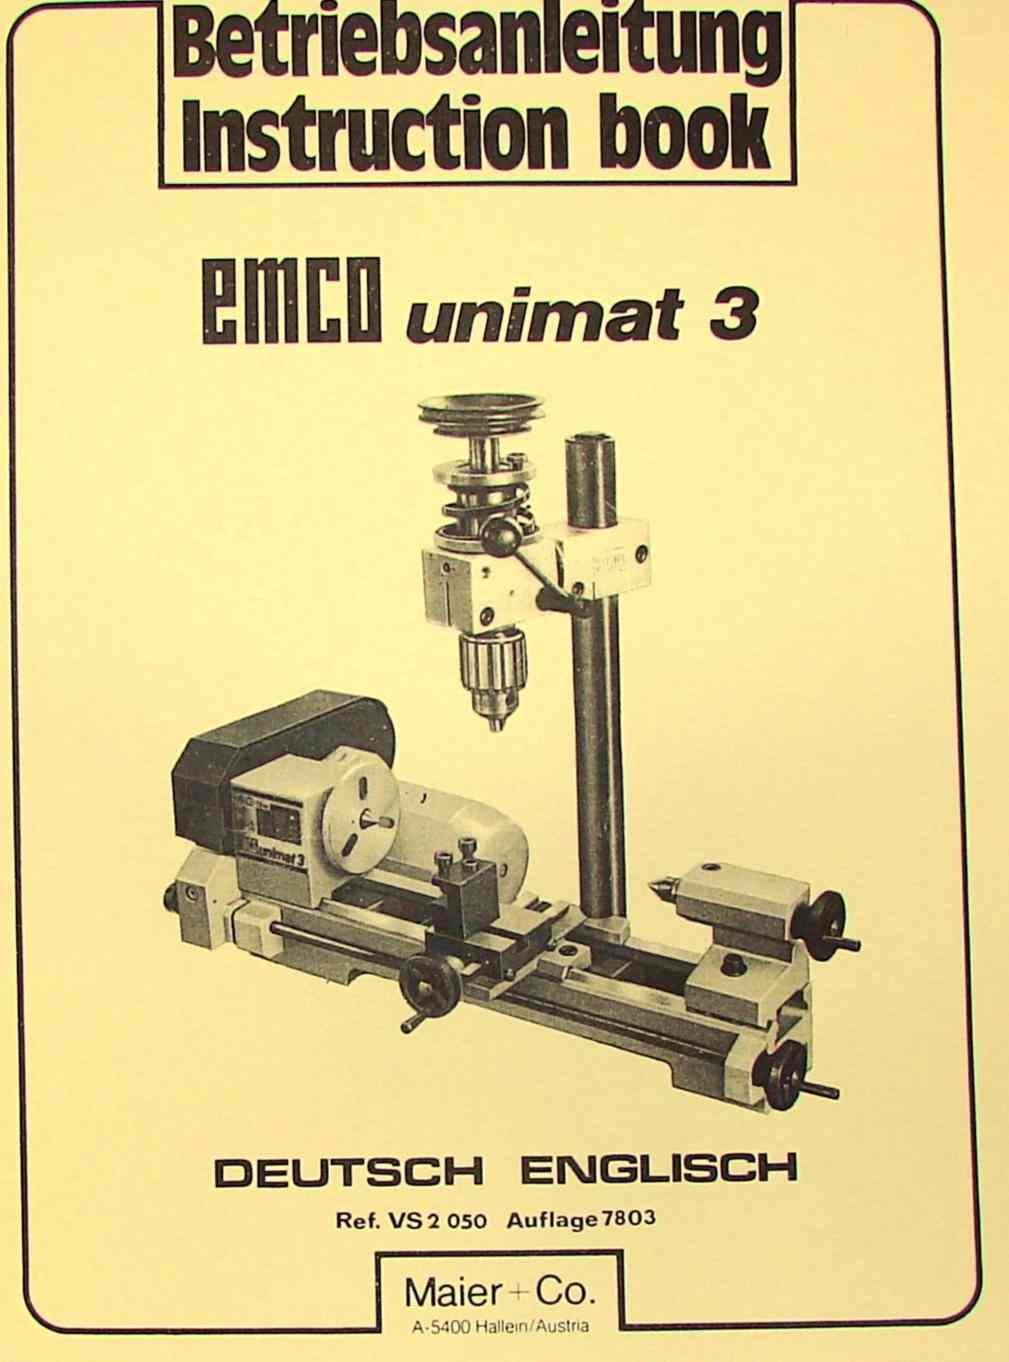 EMCO Unimat 3 Mill Metal Lathe Instruction Manual | Ozark Tool Manuals & Books